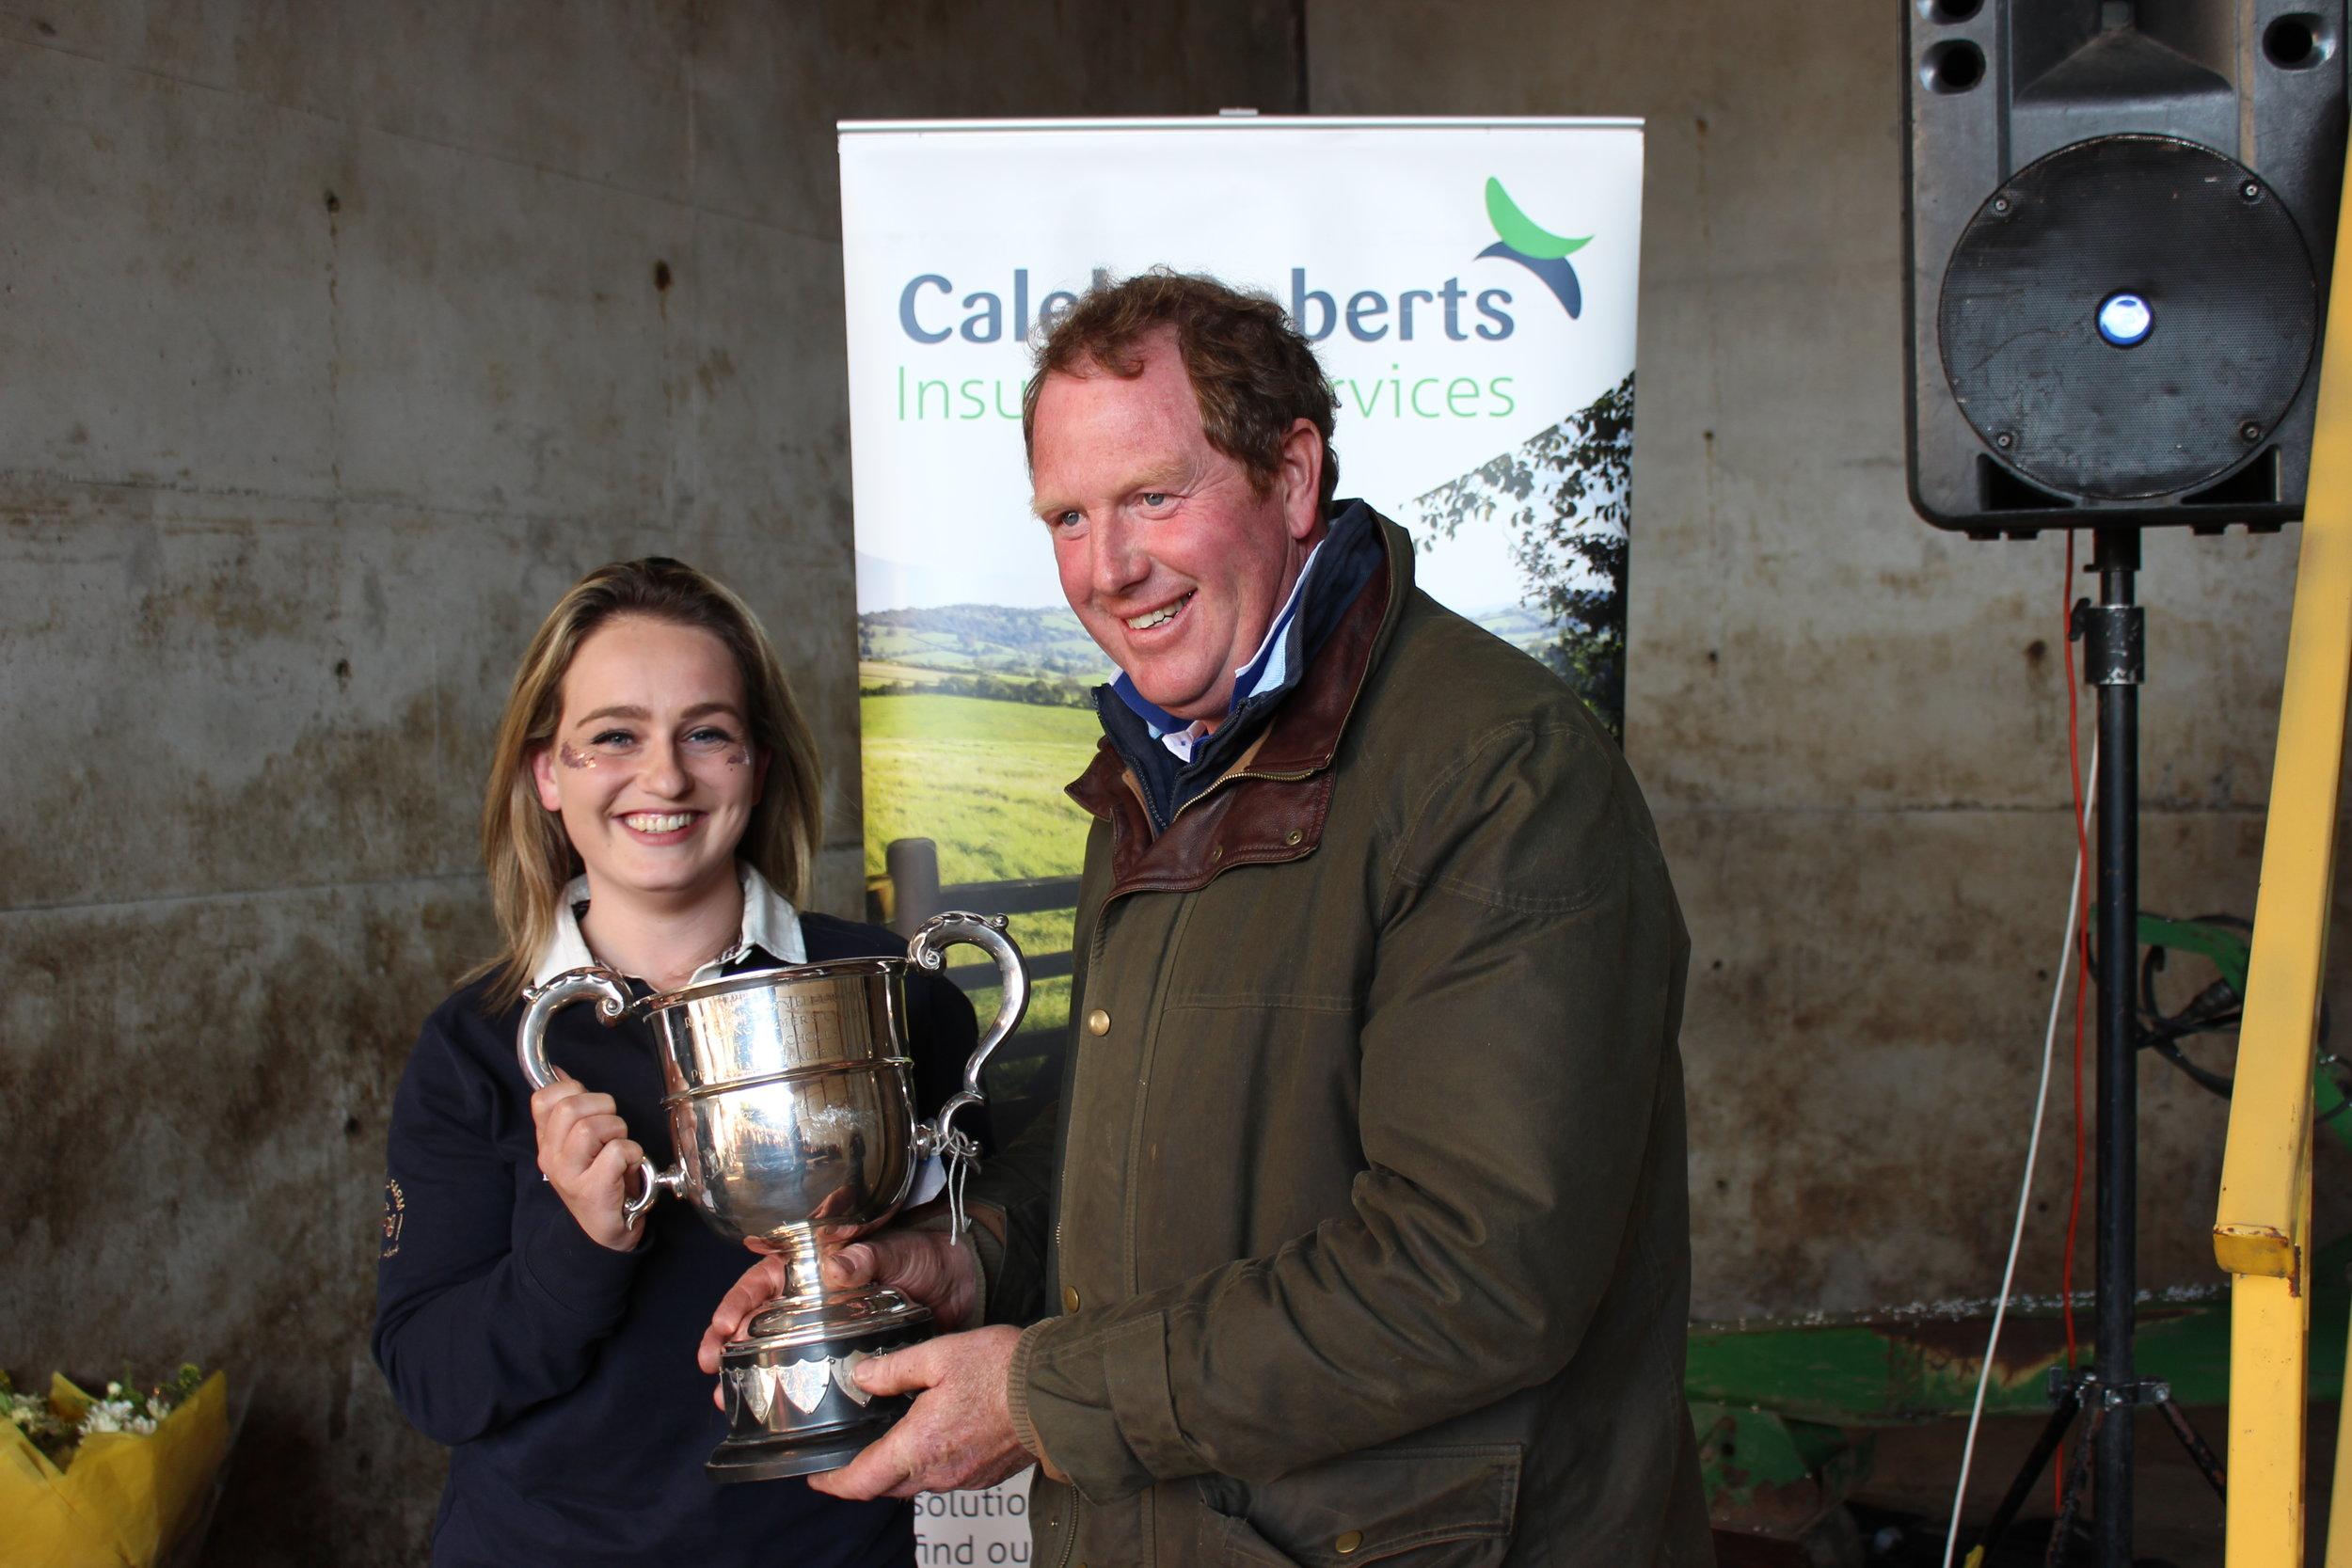 Lauren Morris, Radnor Valley YFC - TO Nicholls Trophy Stockjudging on Rally Day being presented by Rally Host, David Price.